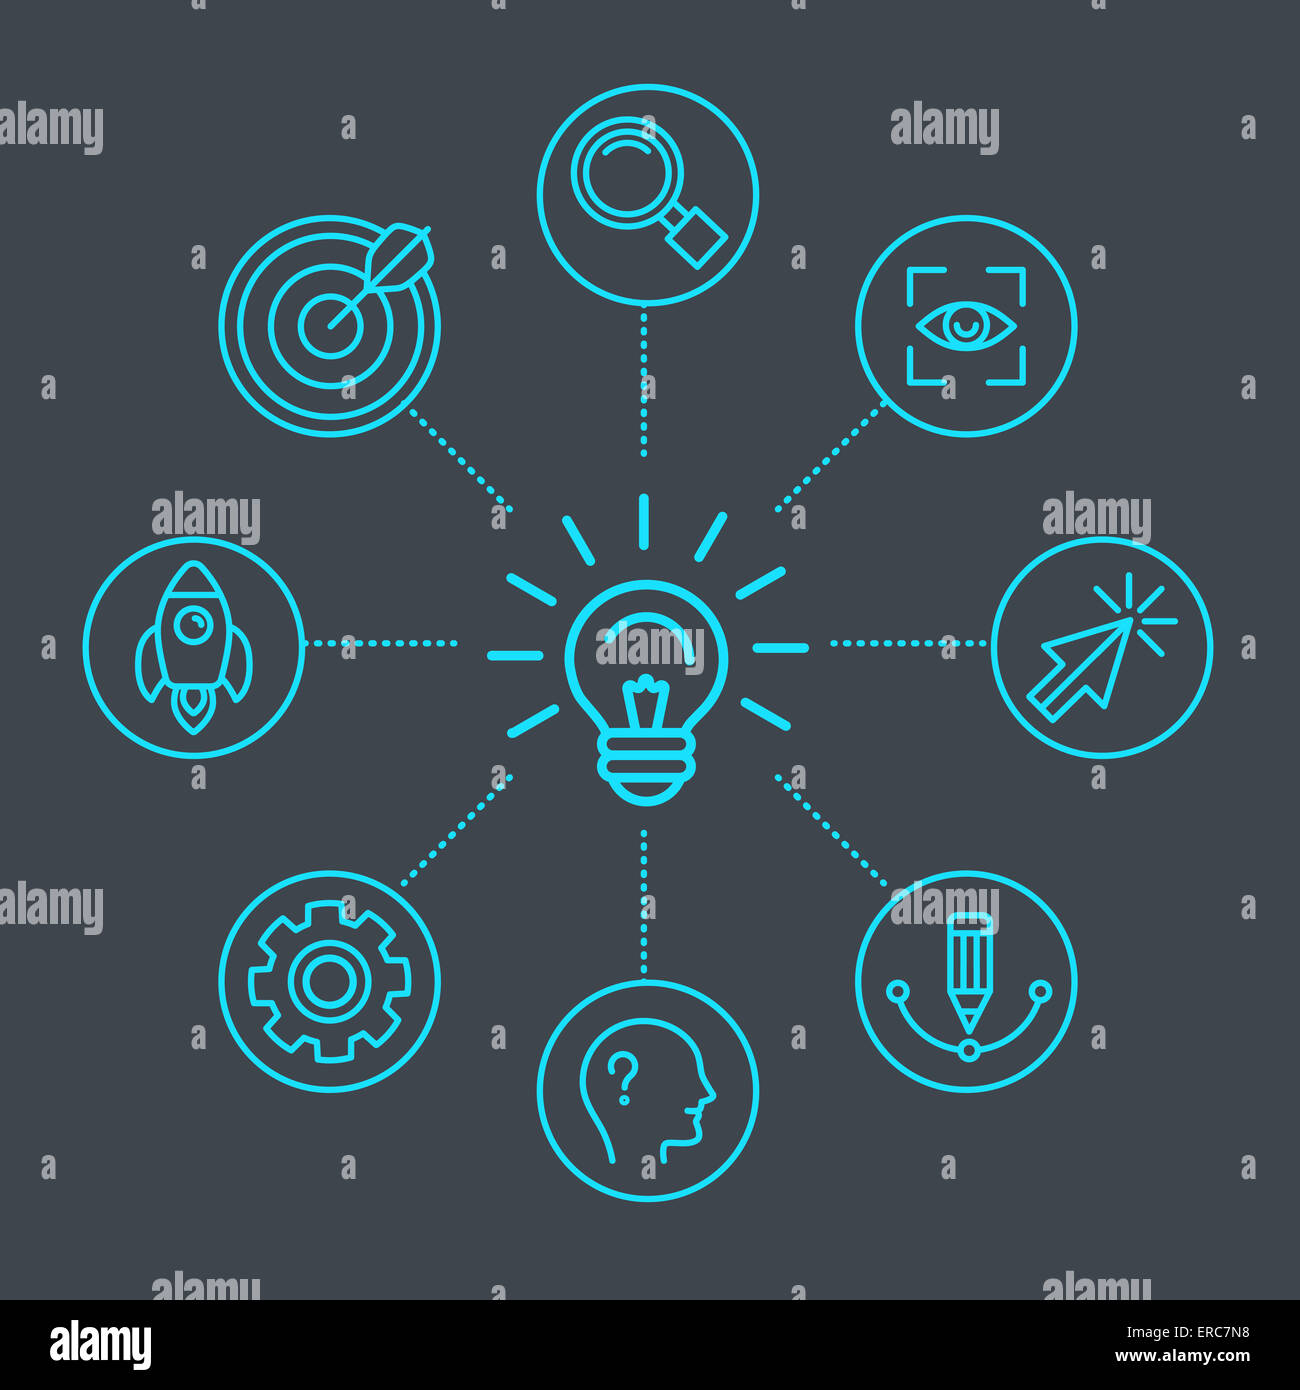 Innovation concept in linear style - light bulb and infgraphics design elements and icons - Stock Image